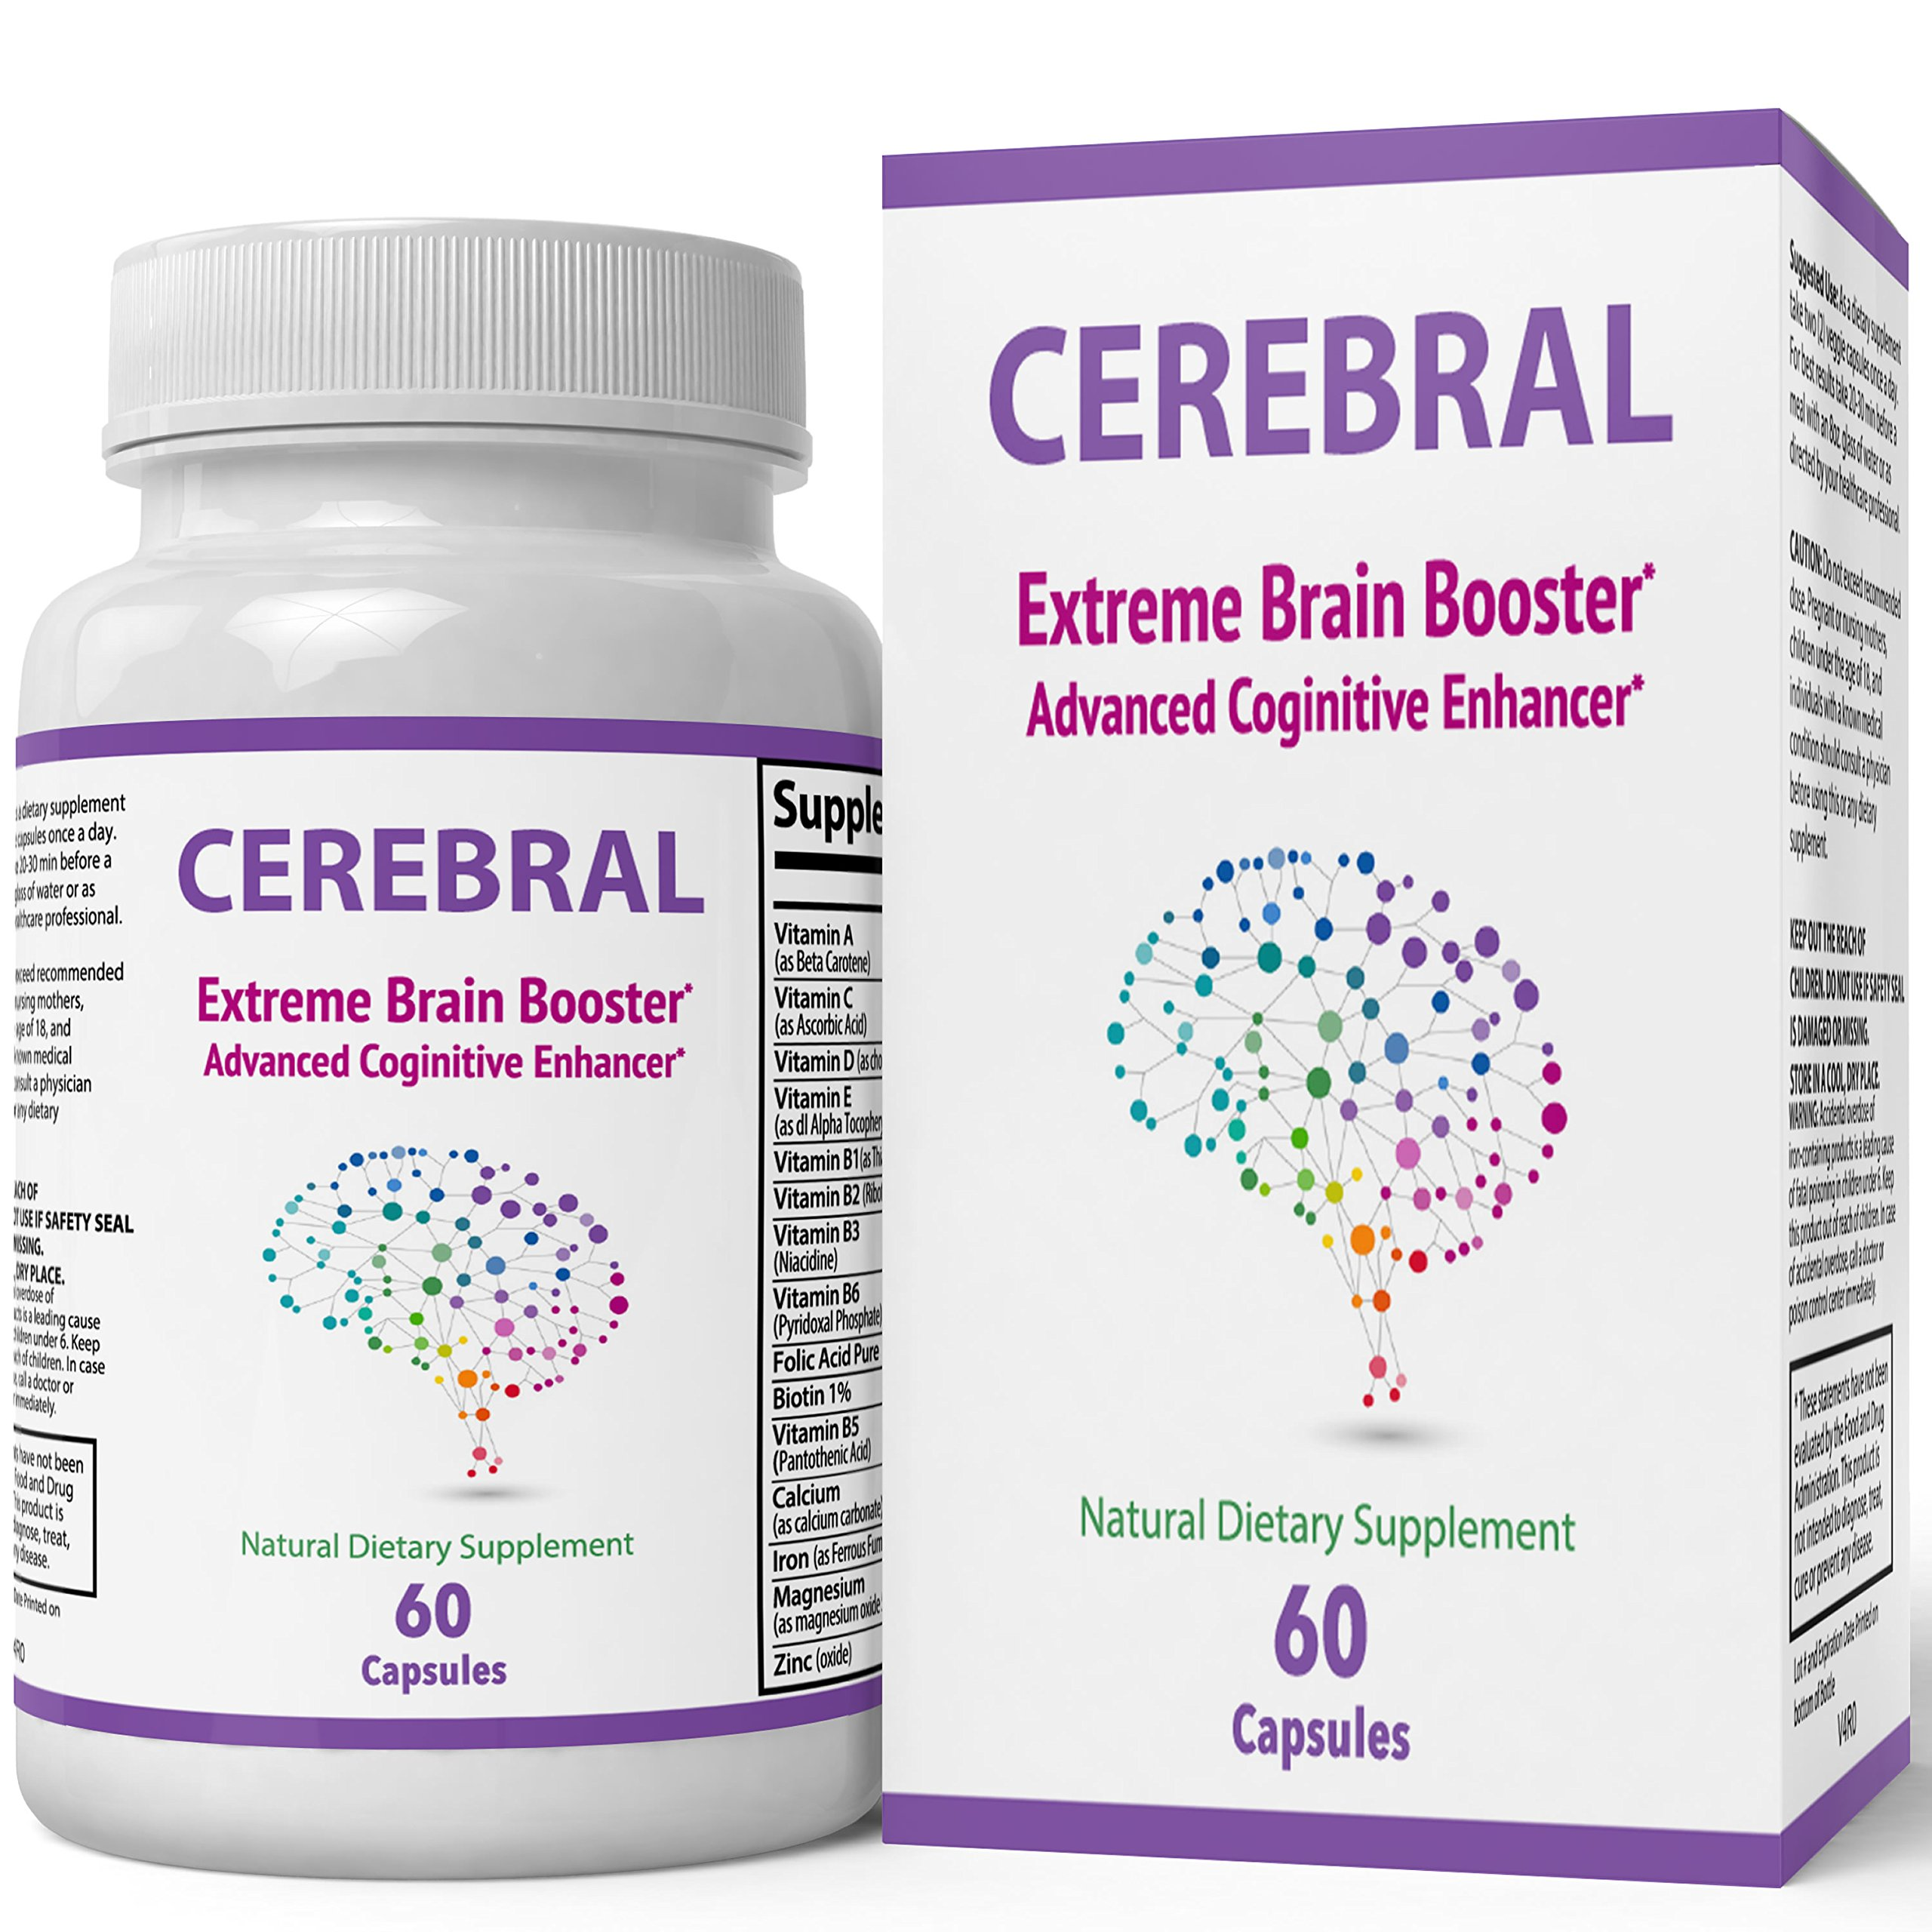 Cerebral Extreme Brain Booster Supplement   Natural Nootropics For Mental Focus, Clarity and Memory   Cerebral X Enhances Cognitive Function   60 Capsules – 1 Month Supply (60 COunt)